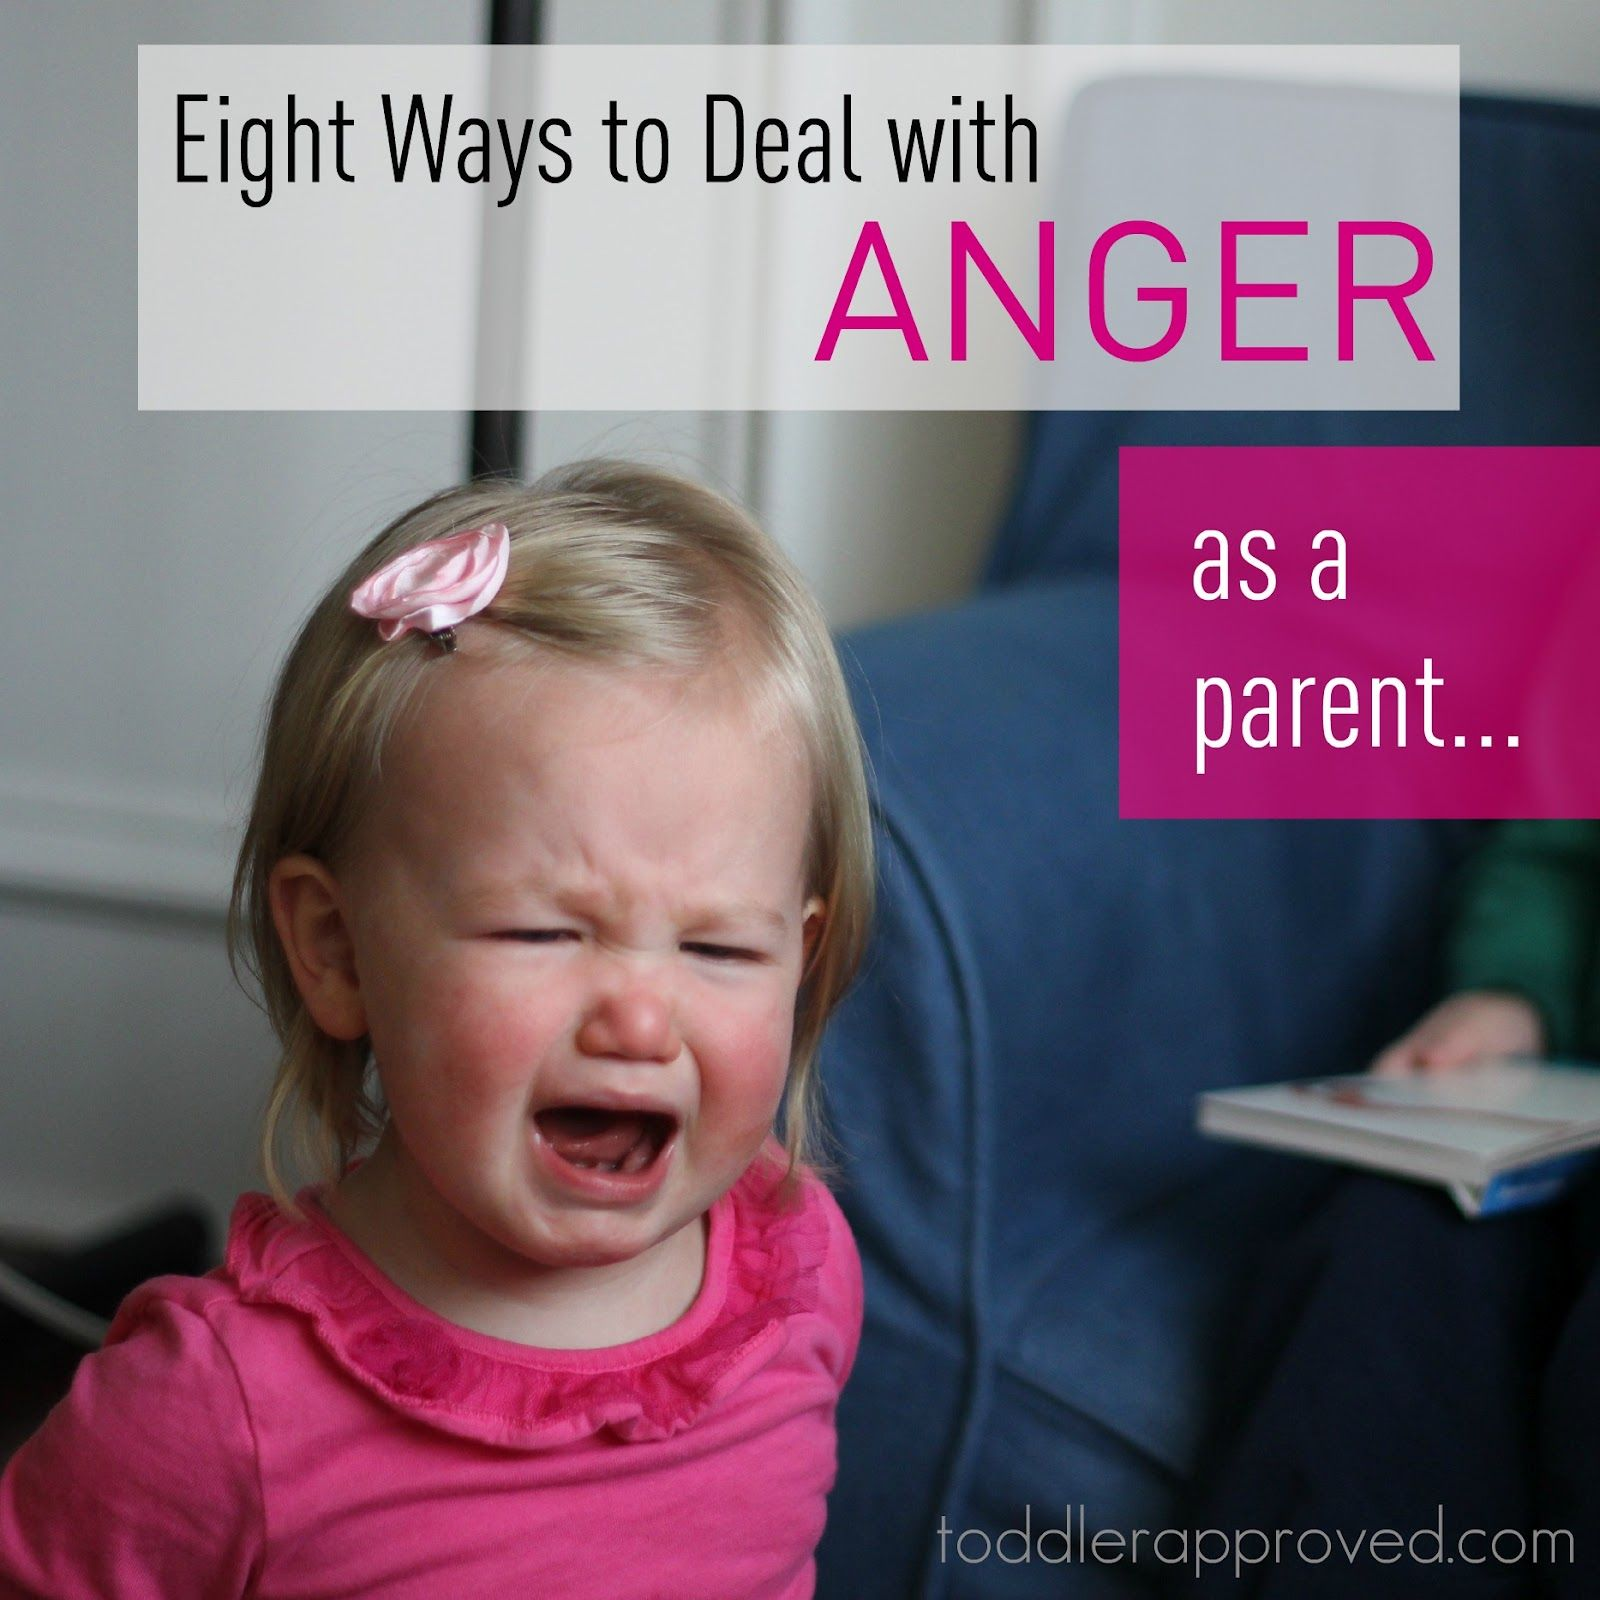 Eight Ways to Deal with Anger as a Parent. Great tips on this page. I may put these on the fridge as a constant reminder.... It's so easy to lose your cool when the little people in your life are being crazy!